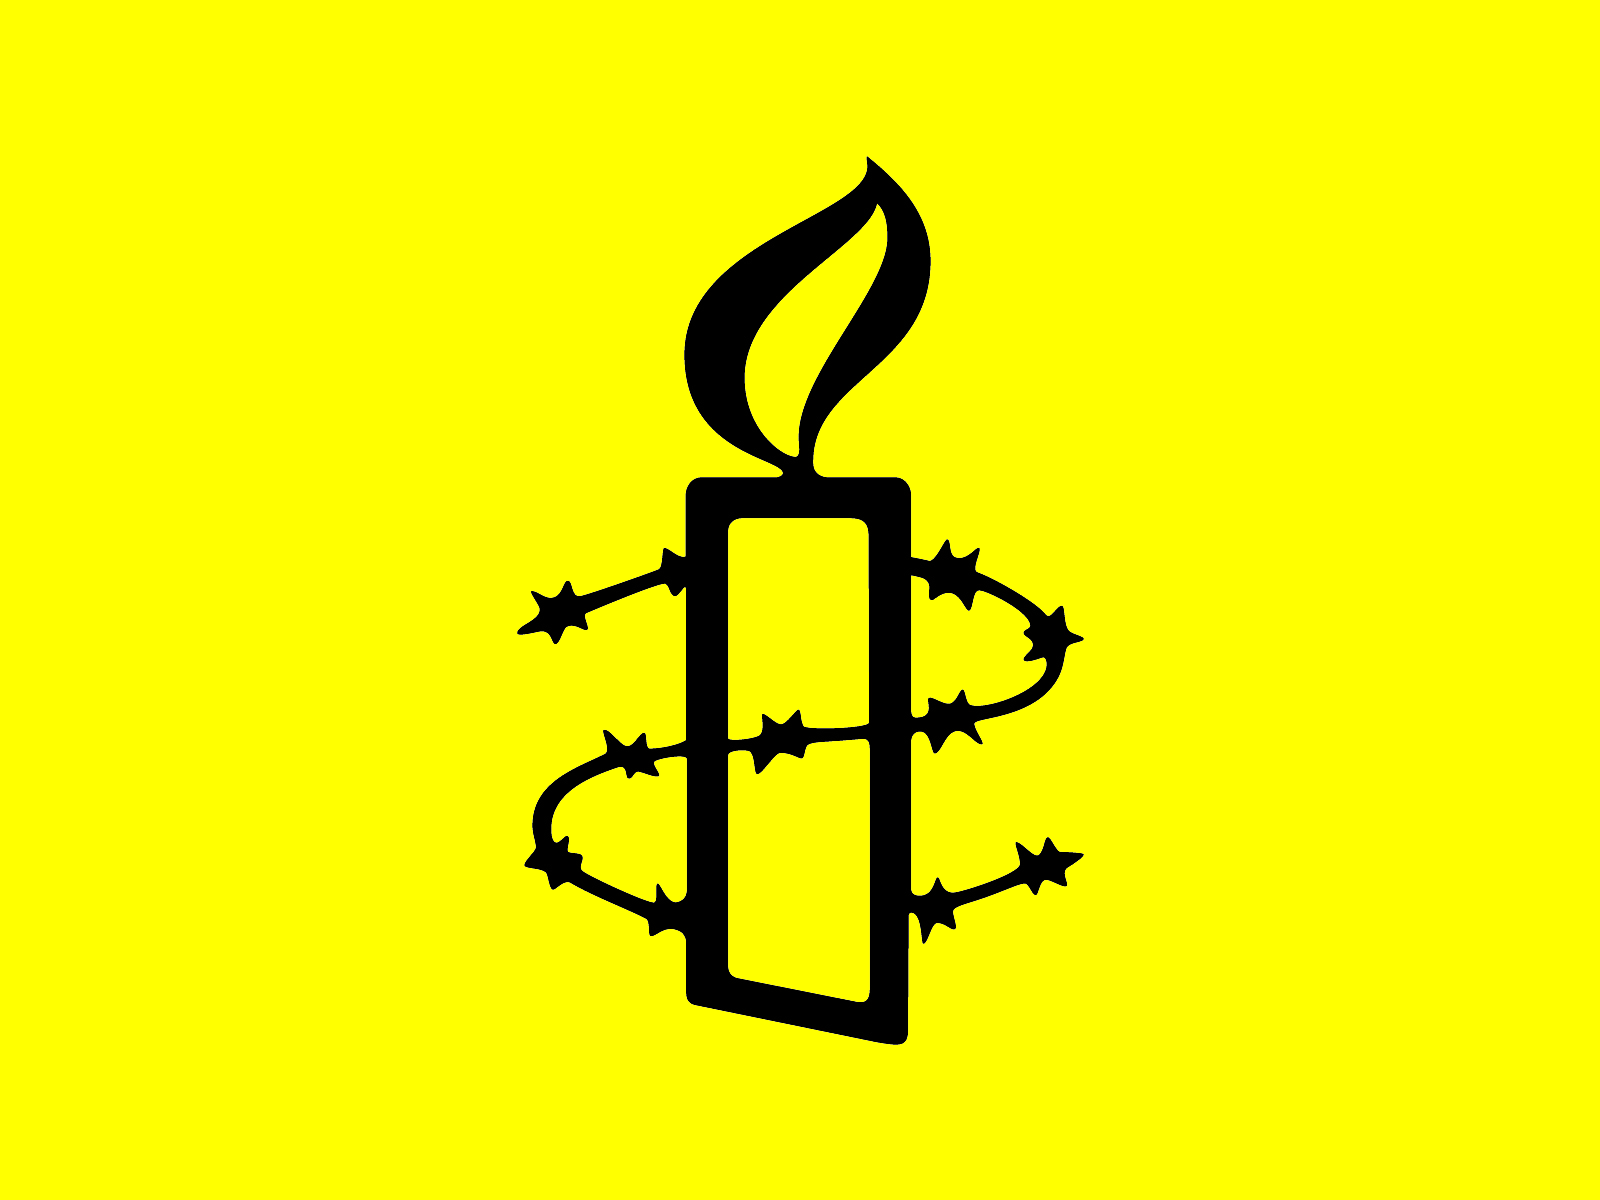 Logo Amnesty International Źródło: Amnesty International, Logo Amnesty International, licencja: CC 0.